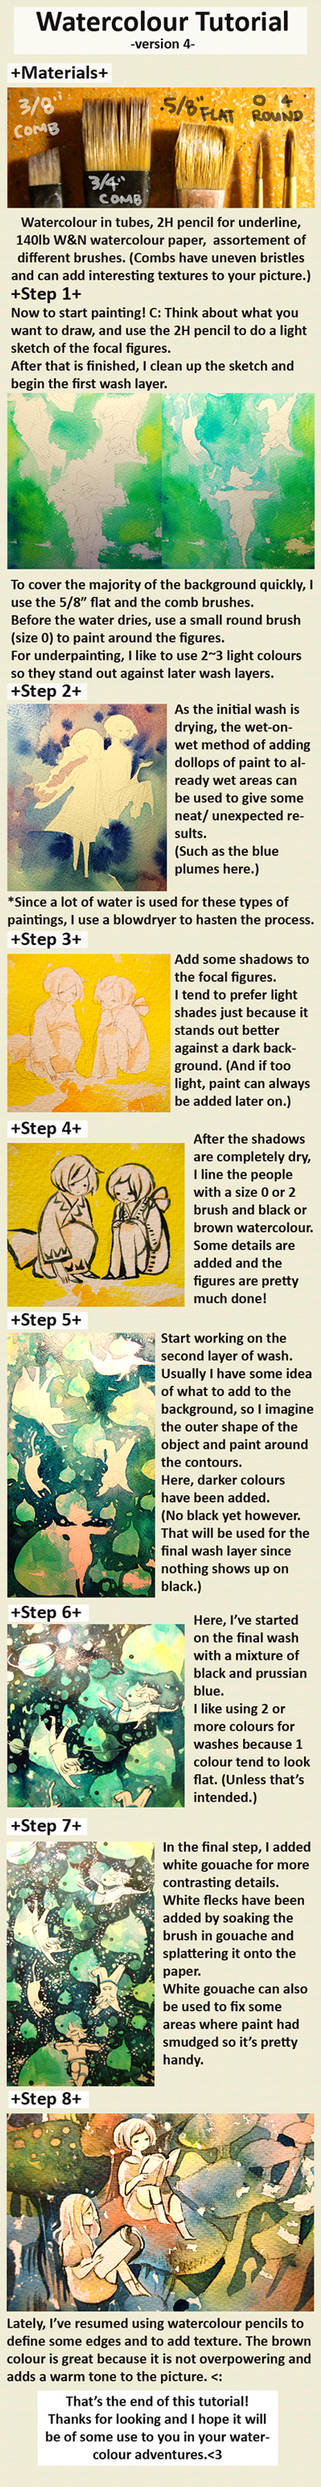 watercolour tutorial v.4